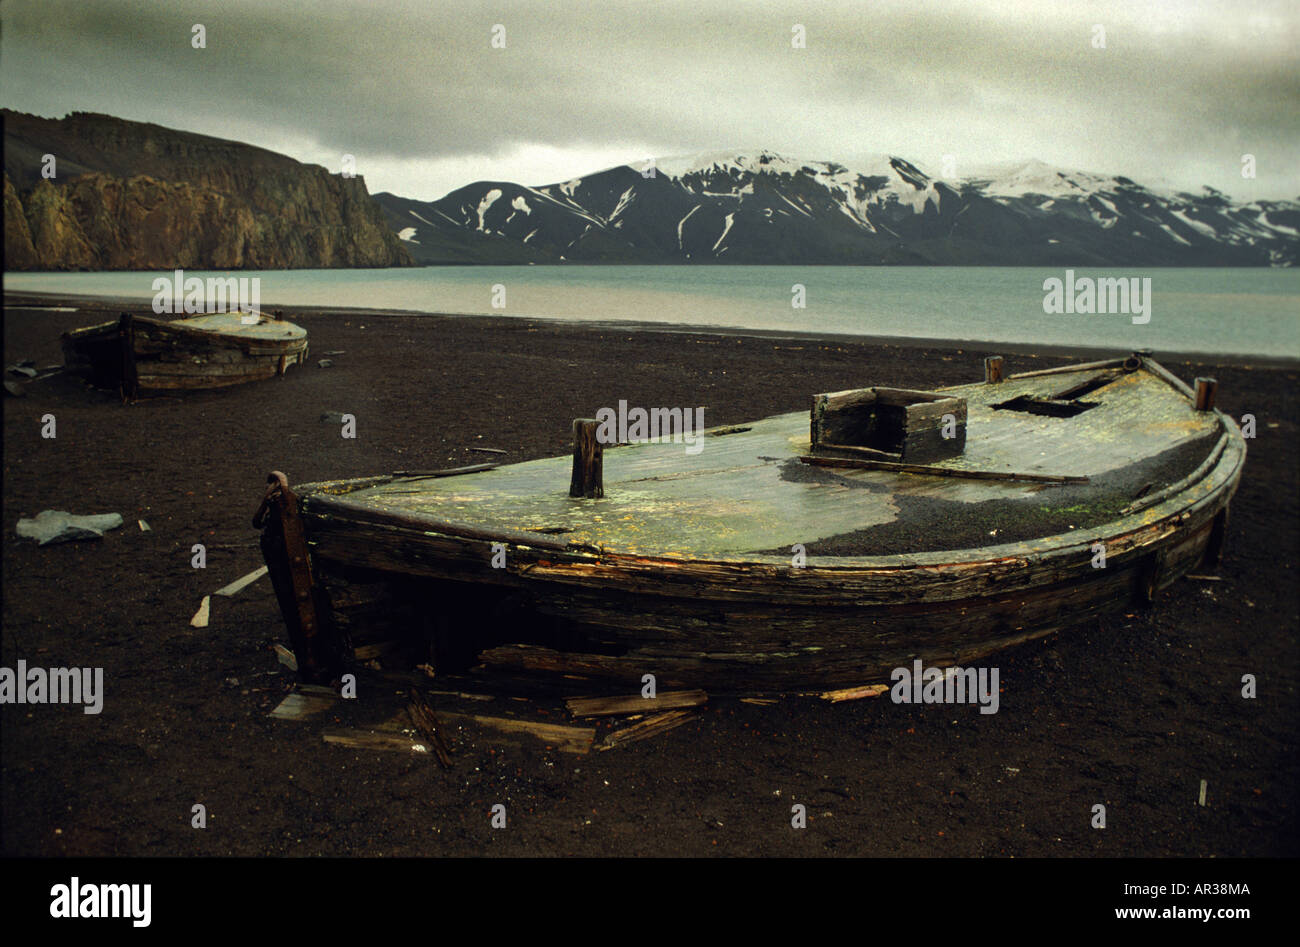 Old whaling boats, Deception Island, Antarctic - Stock Image